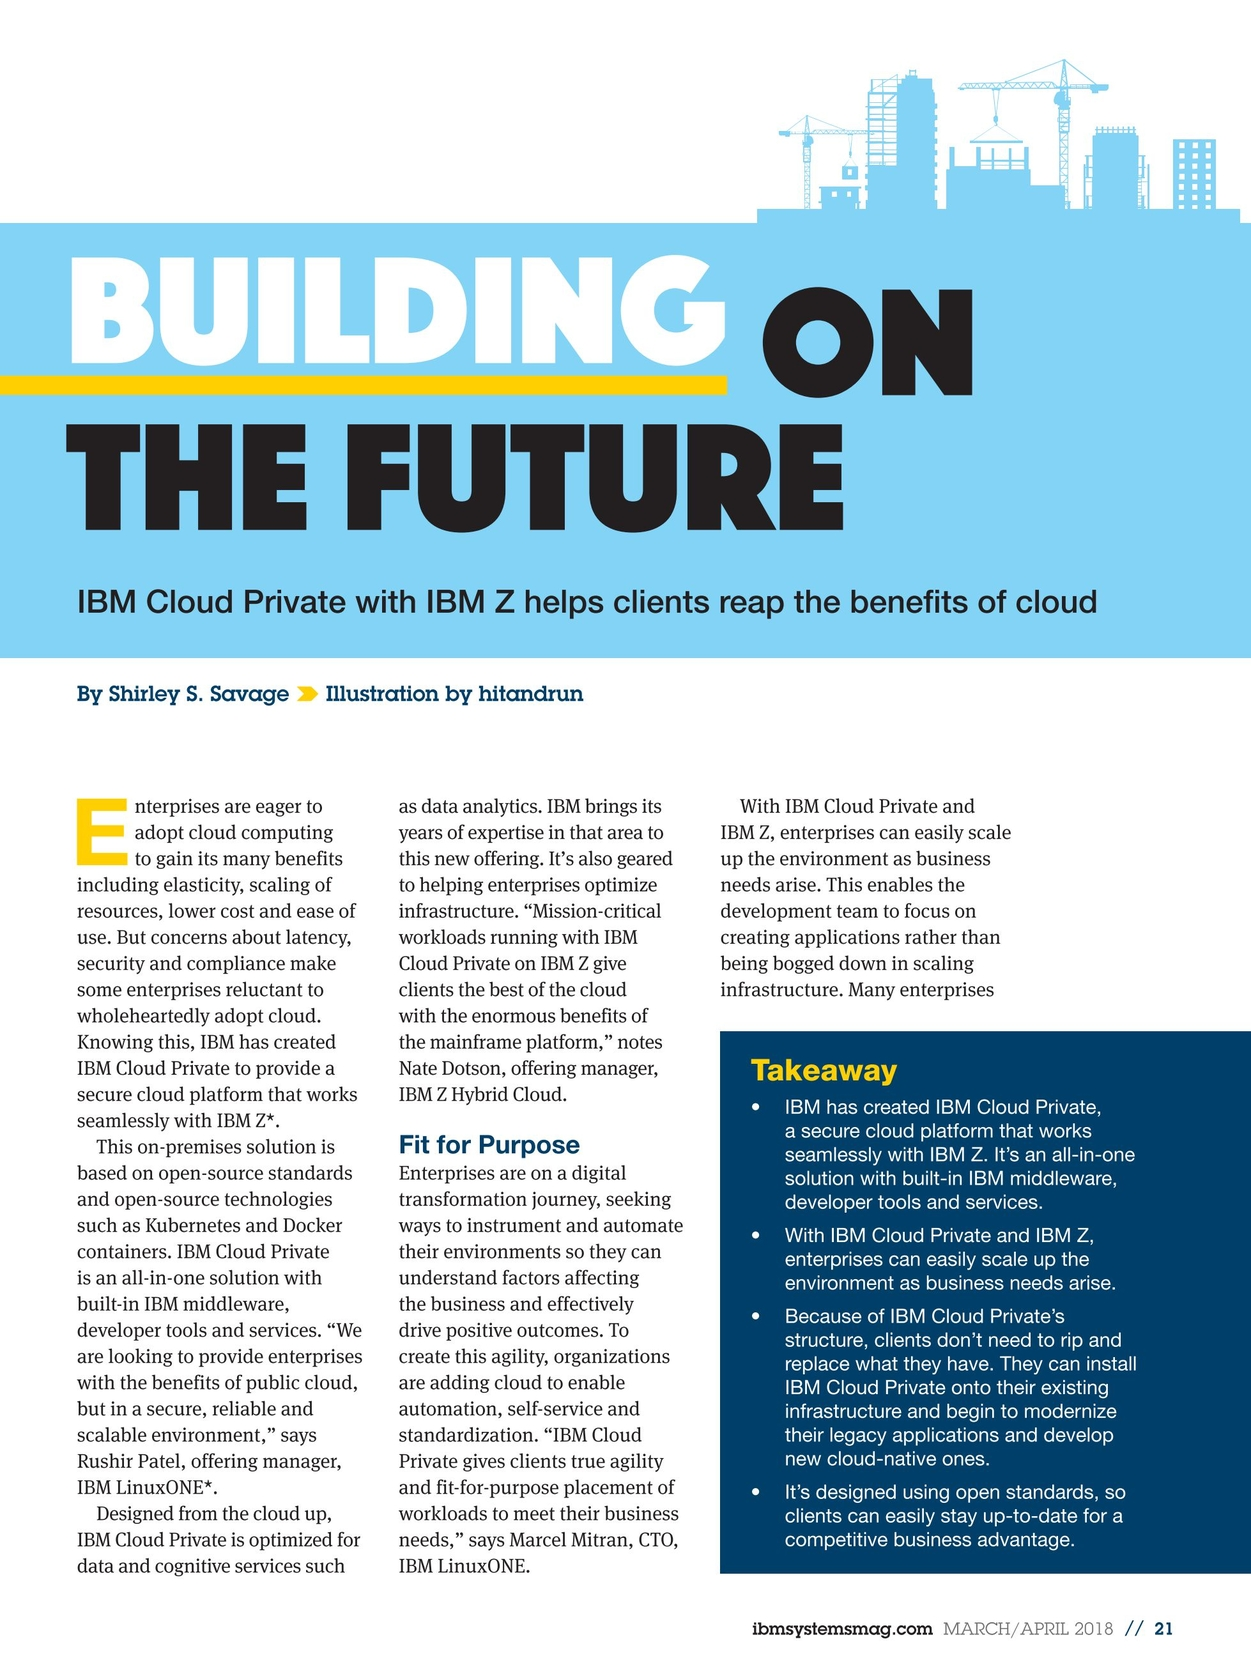 IBM Systems Magazine, Mainframe - March/April 2018